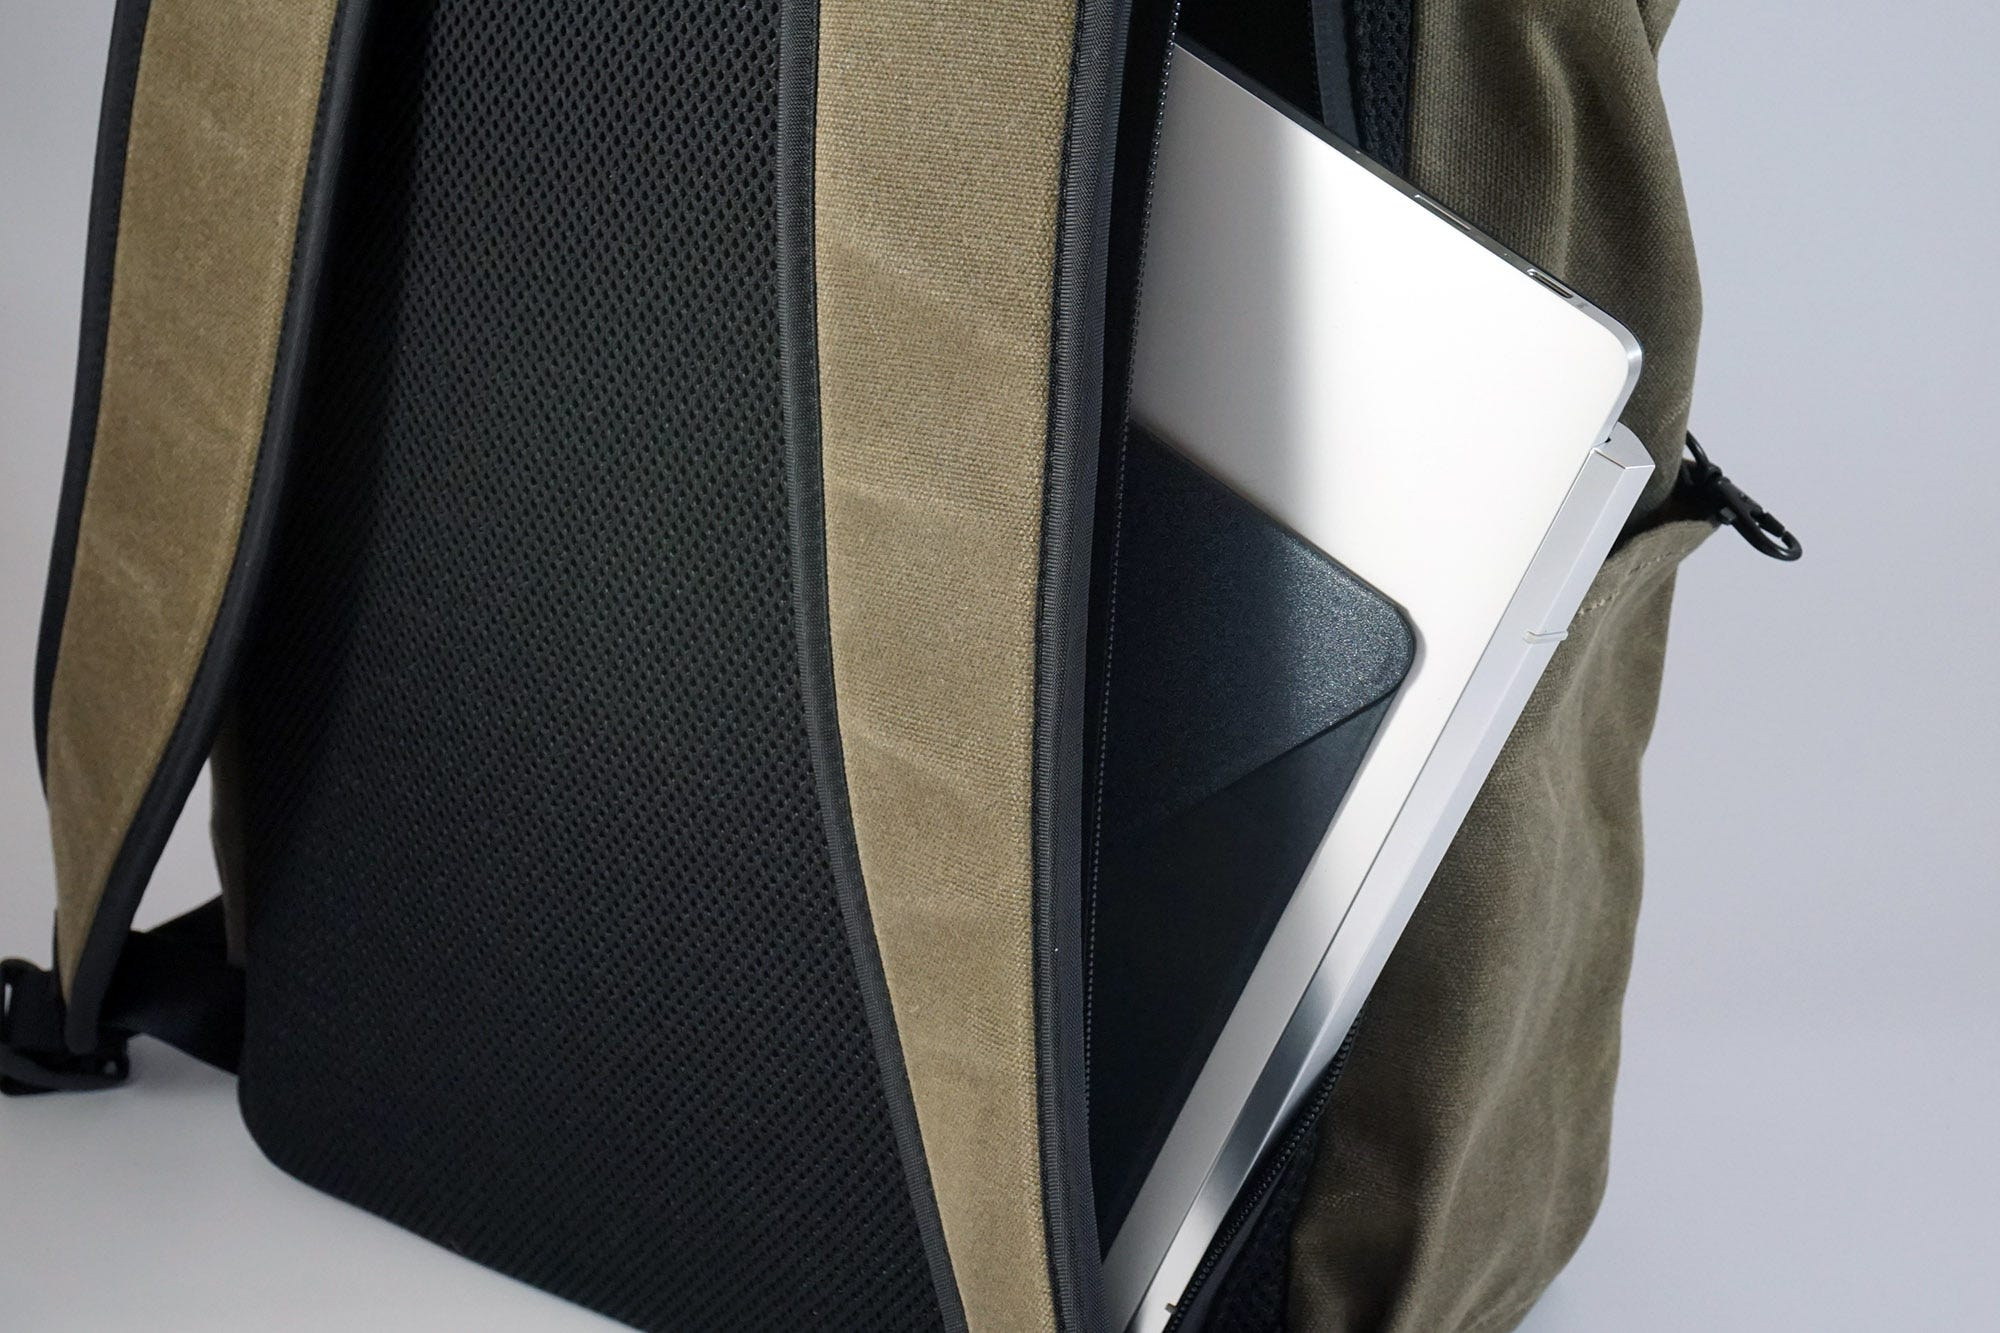 A tough, zippered pocket on the back offers easy access to a laptop.